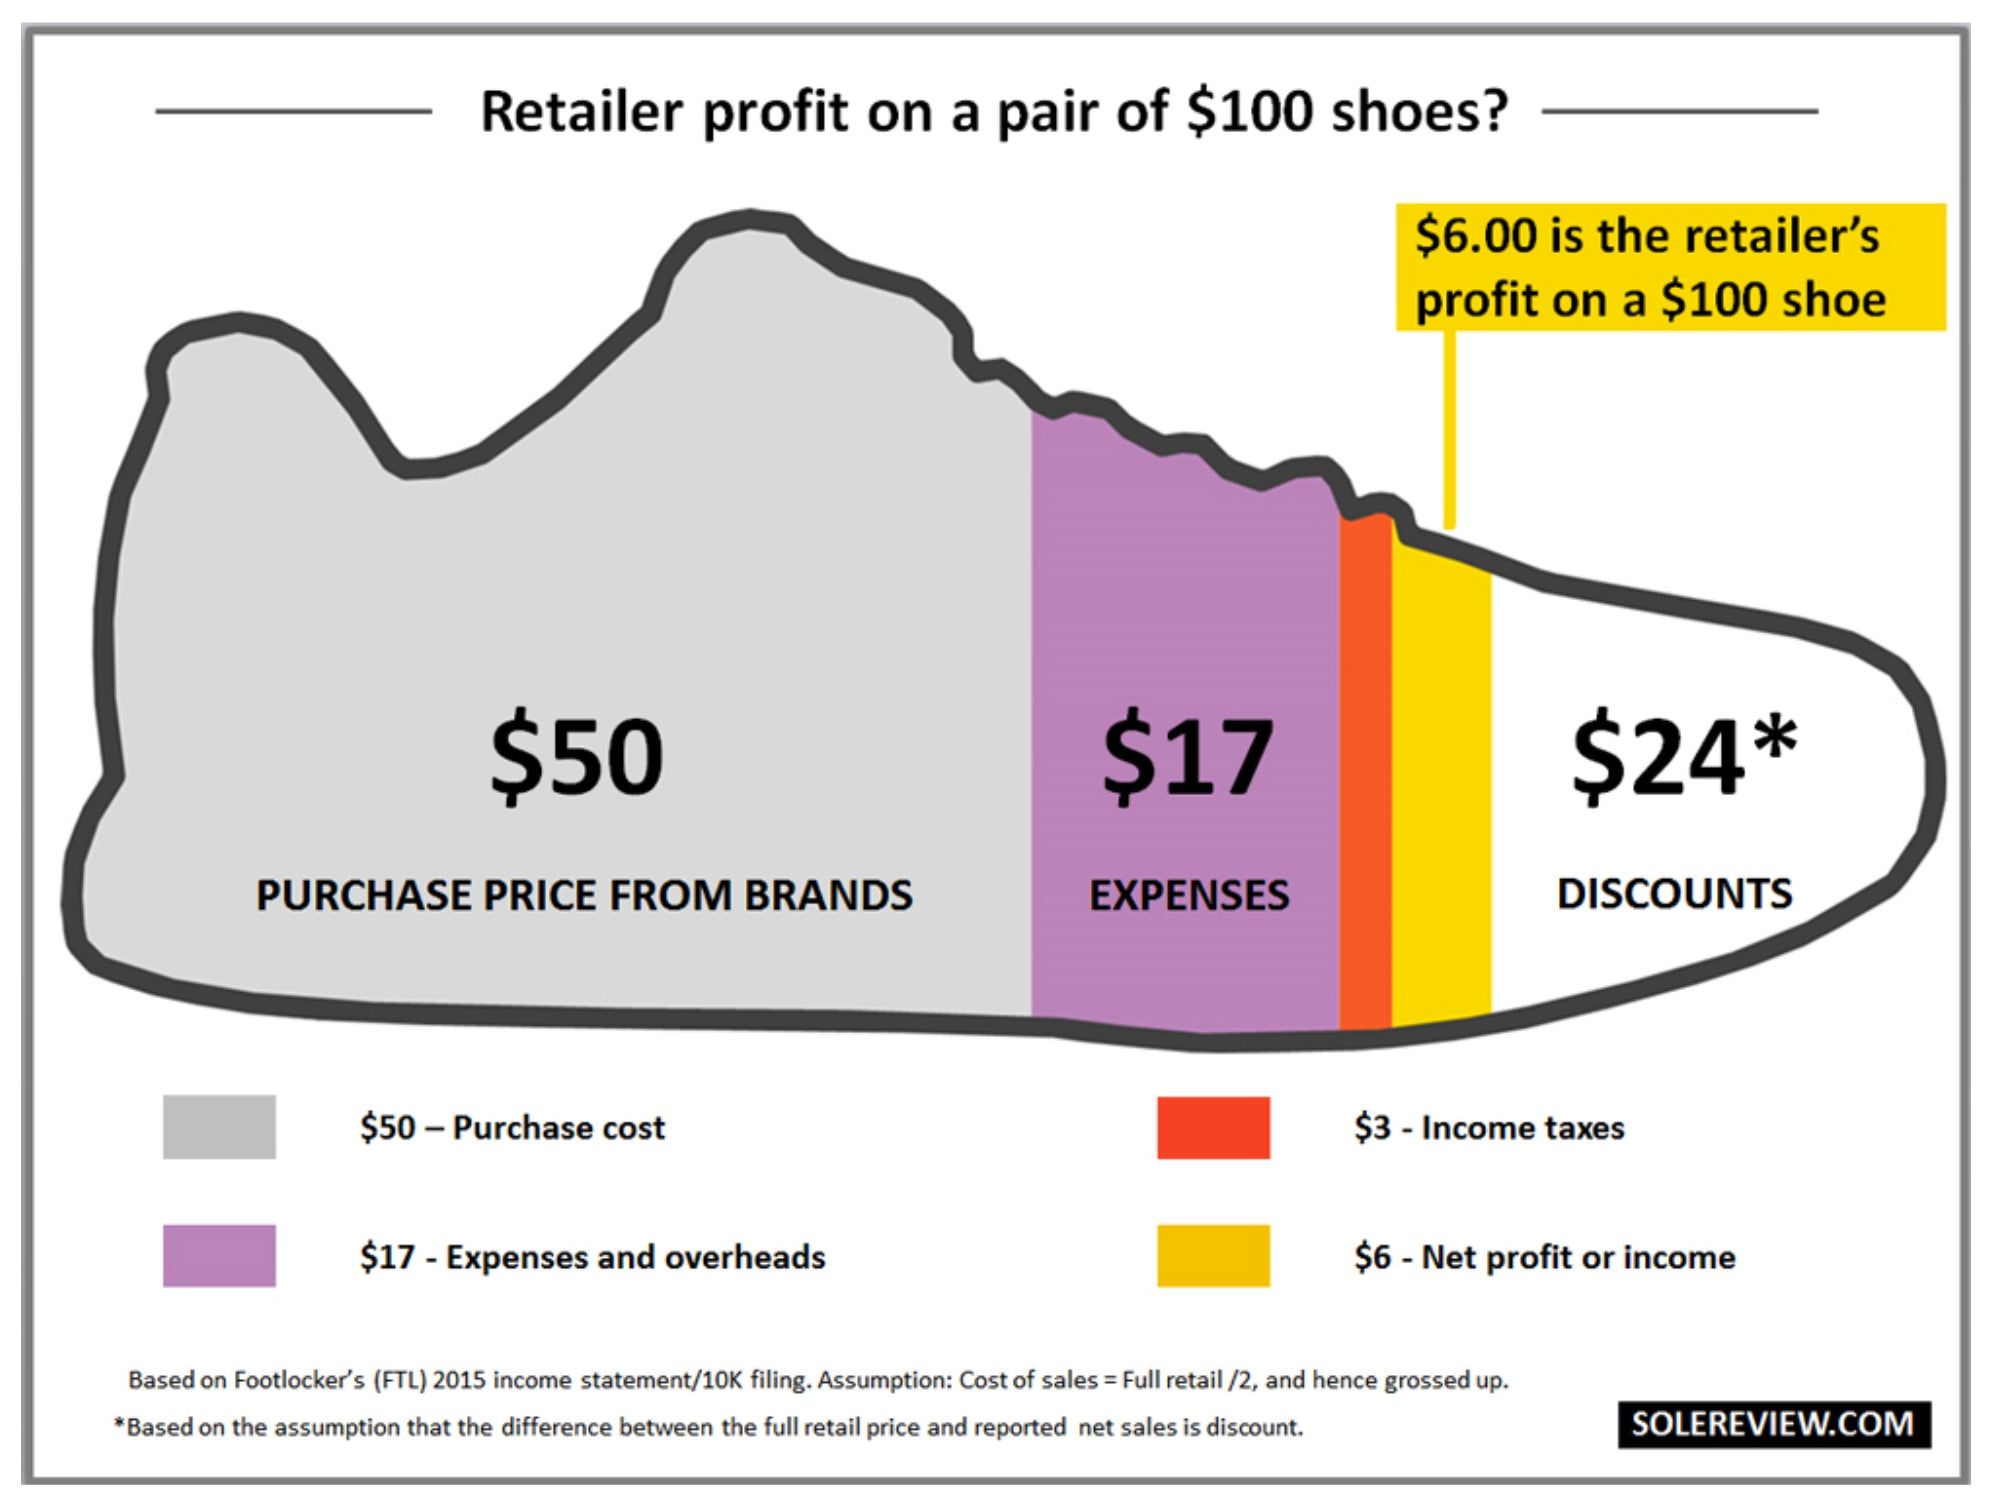 215b6b73069 And just to de-mystify how retail margins work  here s an info graphic from  solereview.com